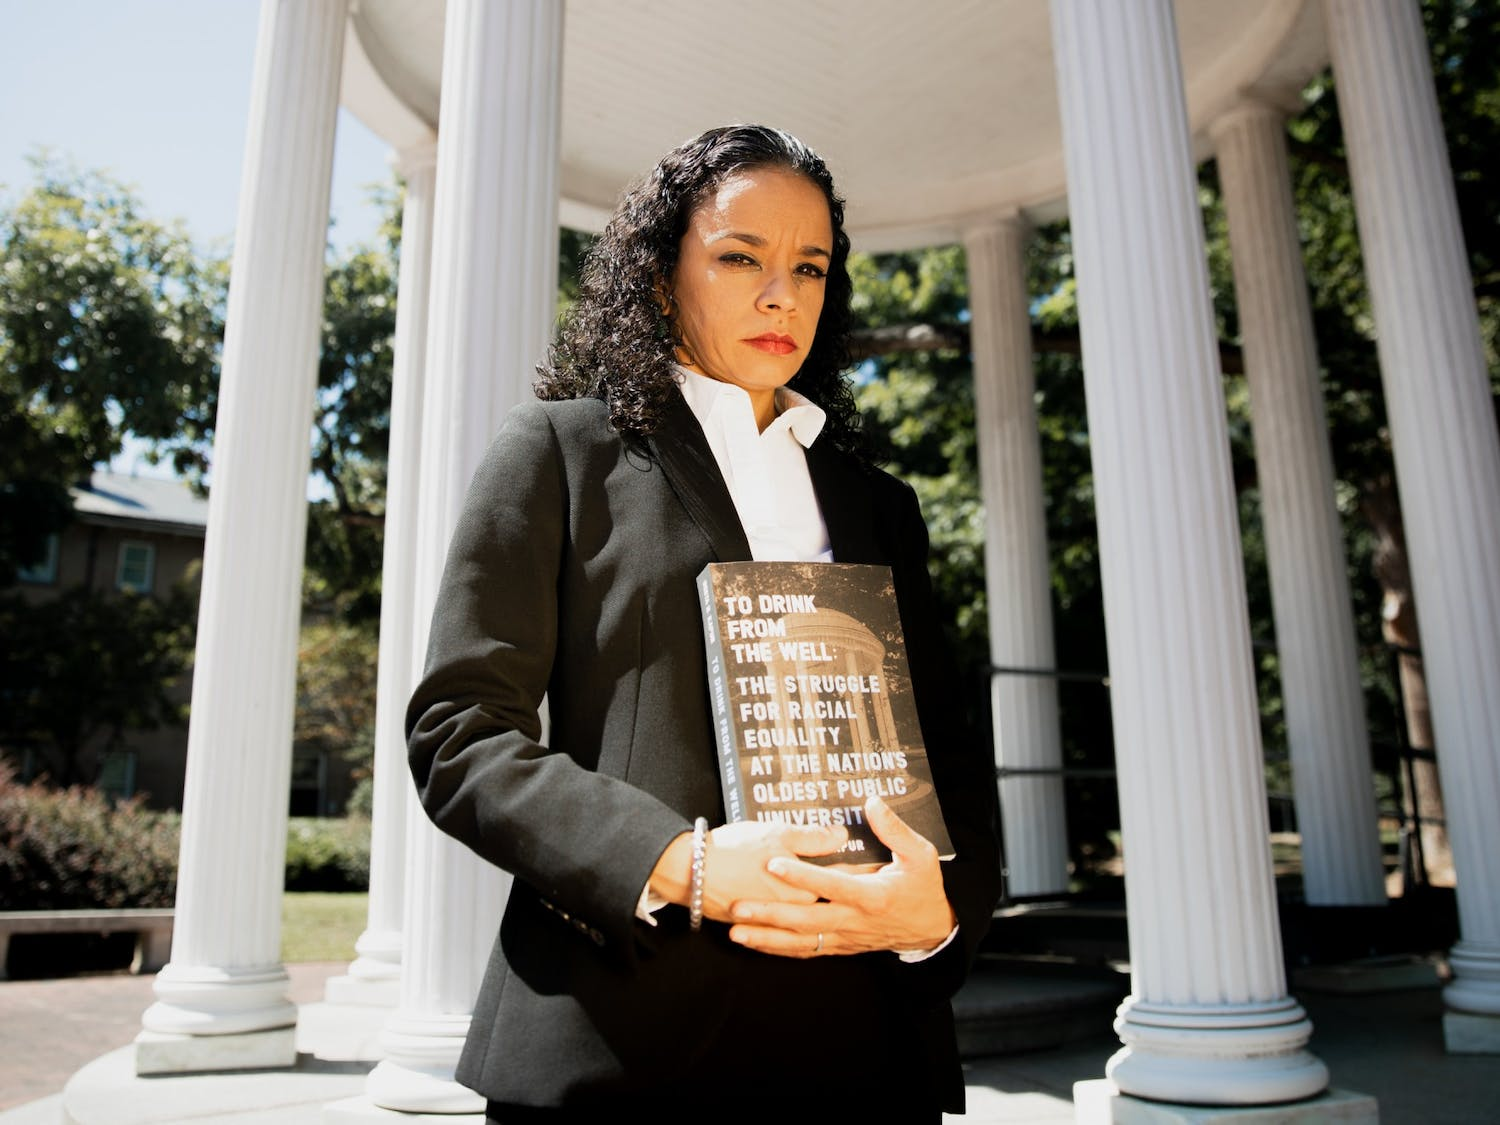 """""""It's been that way since the very beginning,"""" says Geeta Kapur of the systemic racism at UNC. Kapur poses for a portrait at the Old Well with her new book, """"To Drink from the Well: The Struggle for Racial Equality at the Nation's Oldest University,"""" on Tuesday, Sep 7., 2021."""